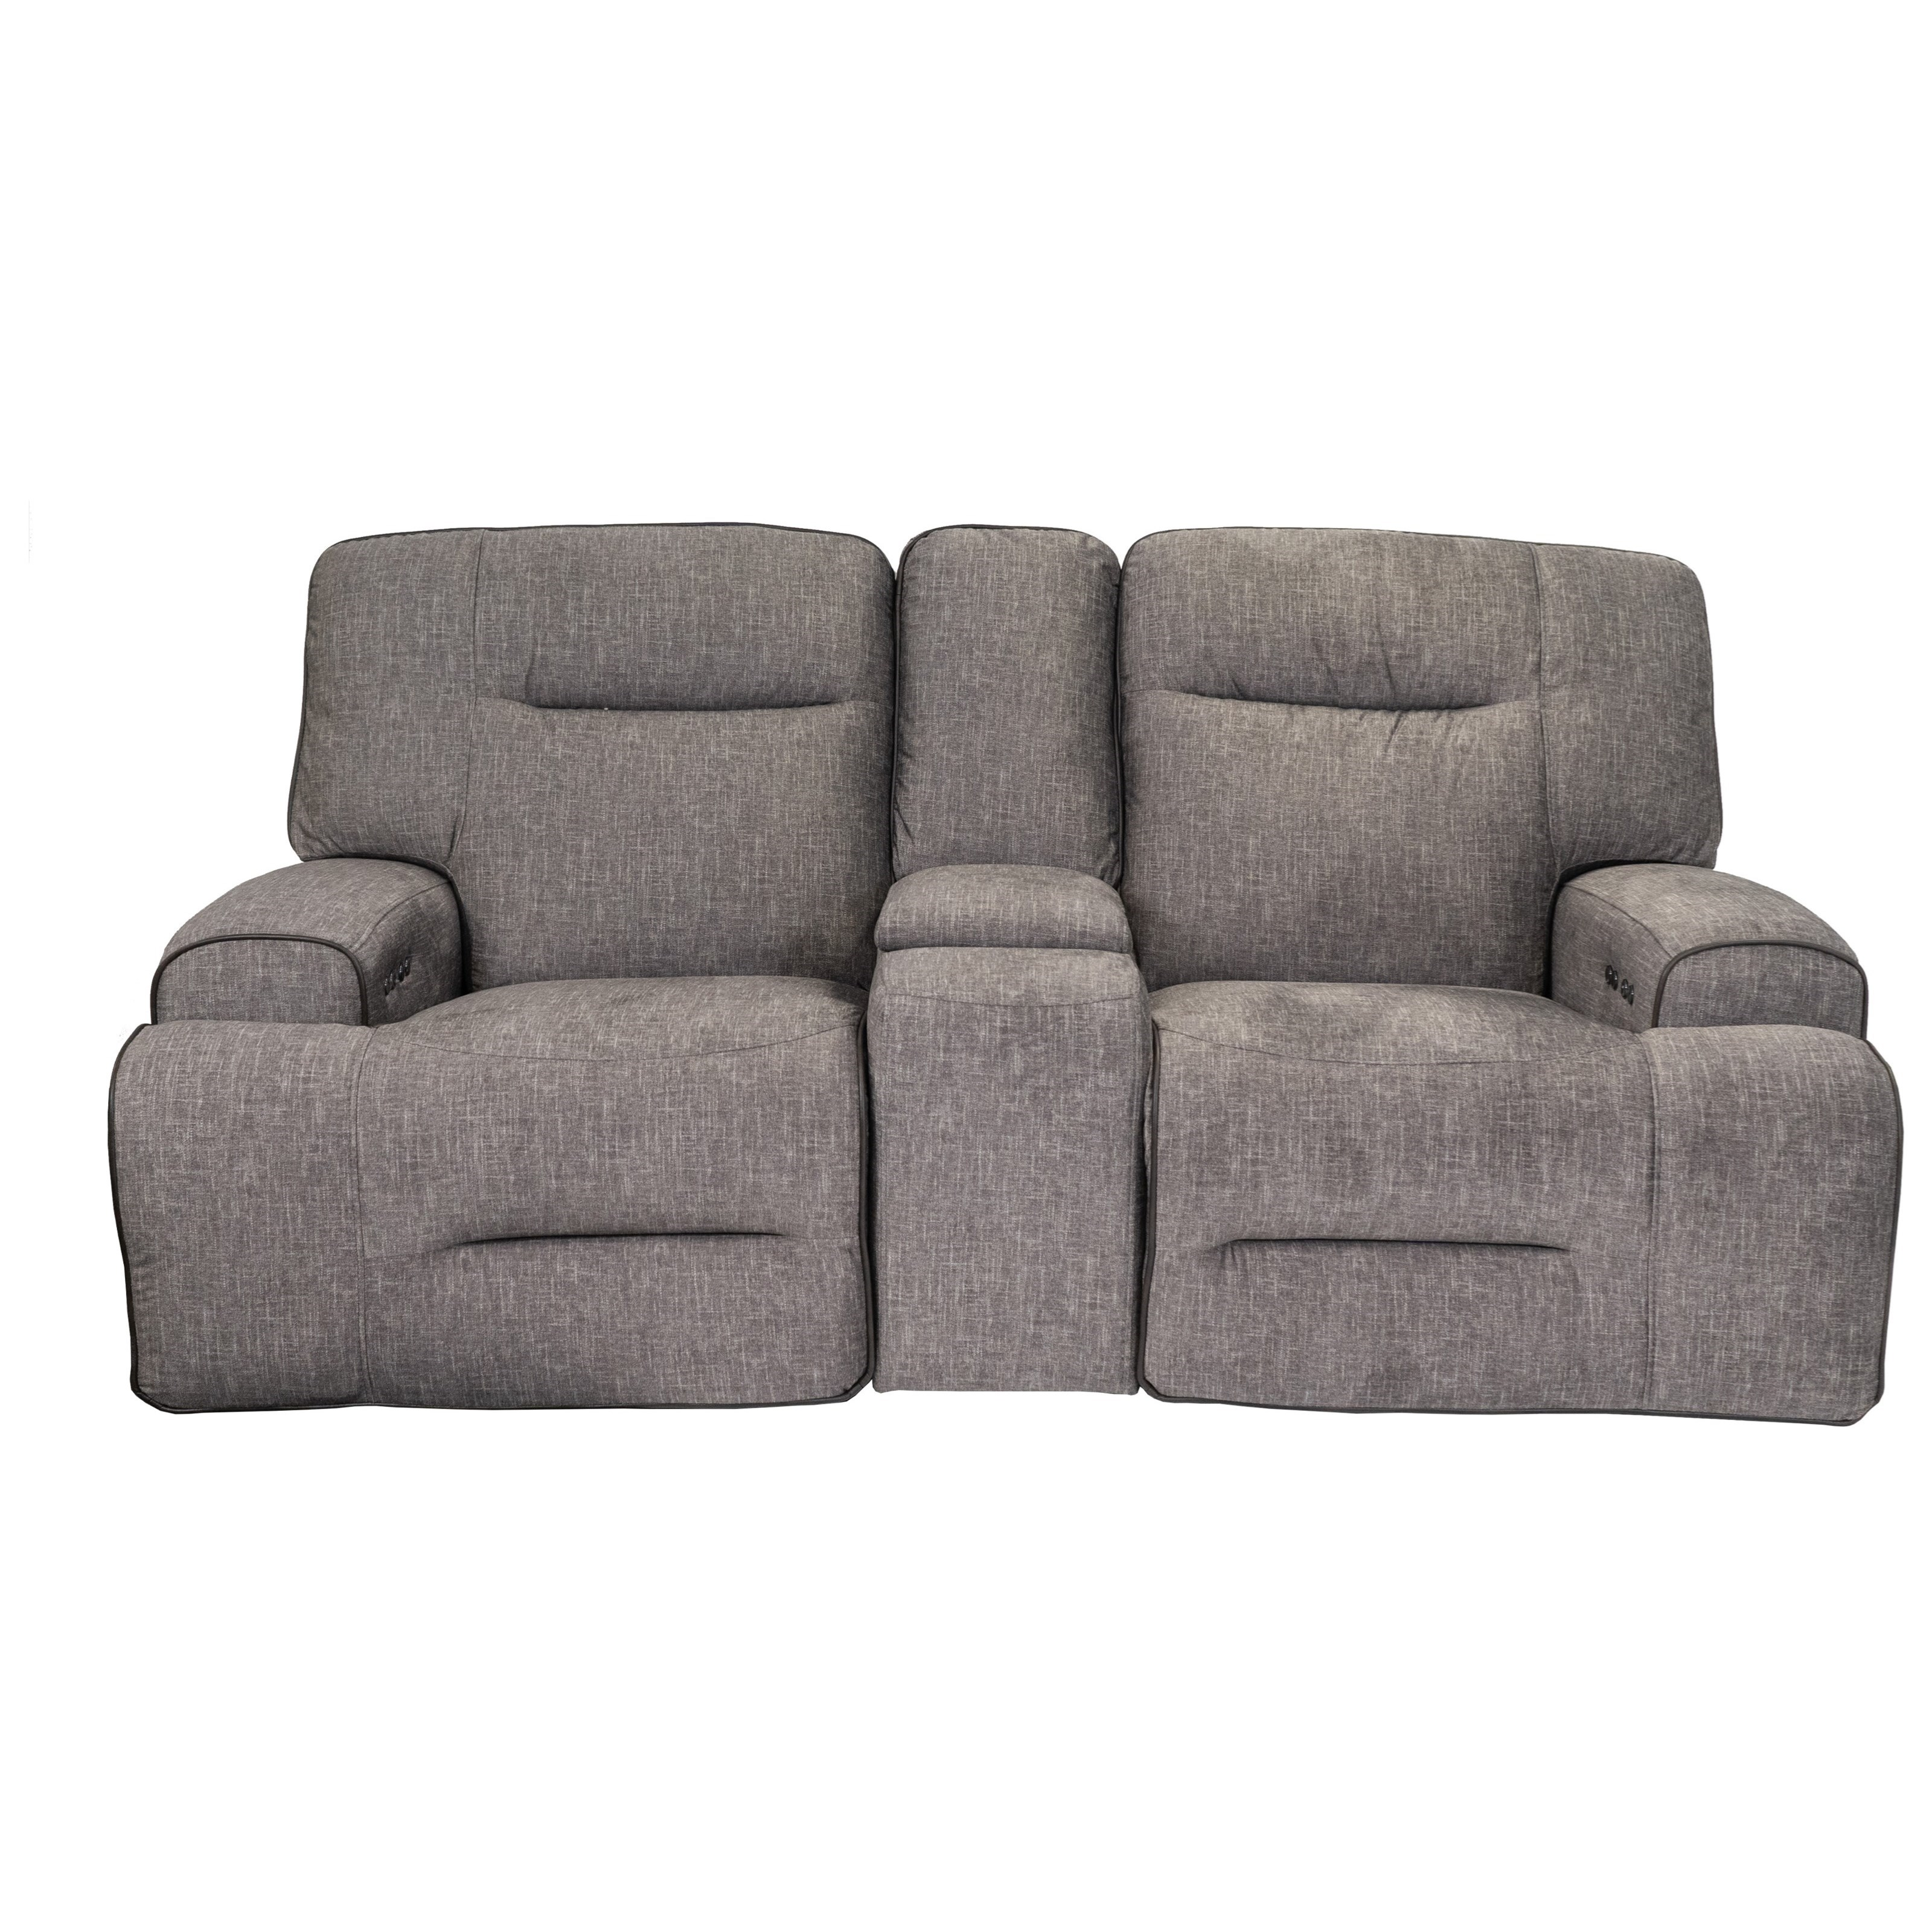 90016 Dual Power Reclining Console Loveseat by Cheers at Household Furniture